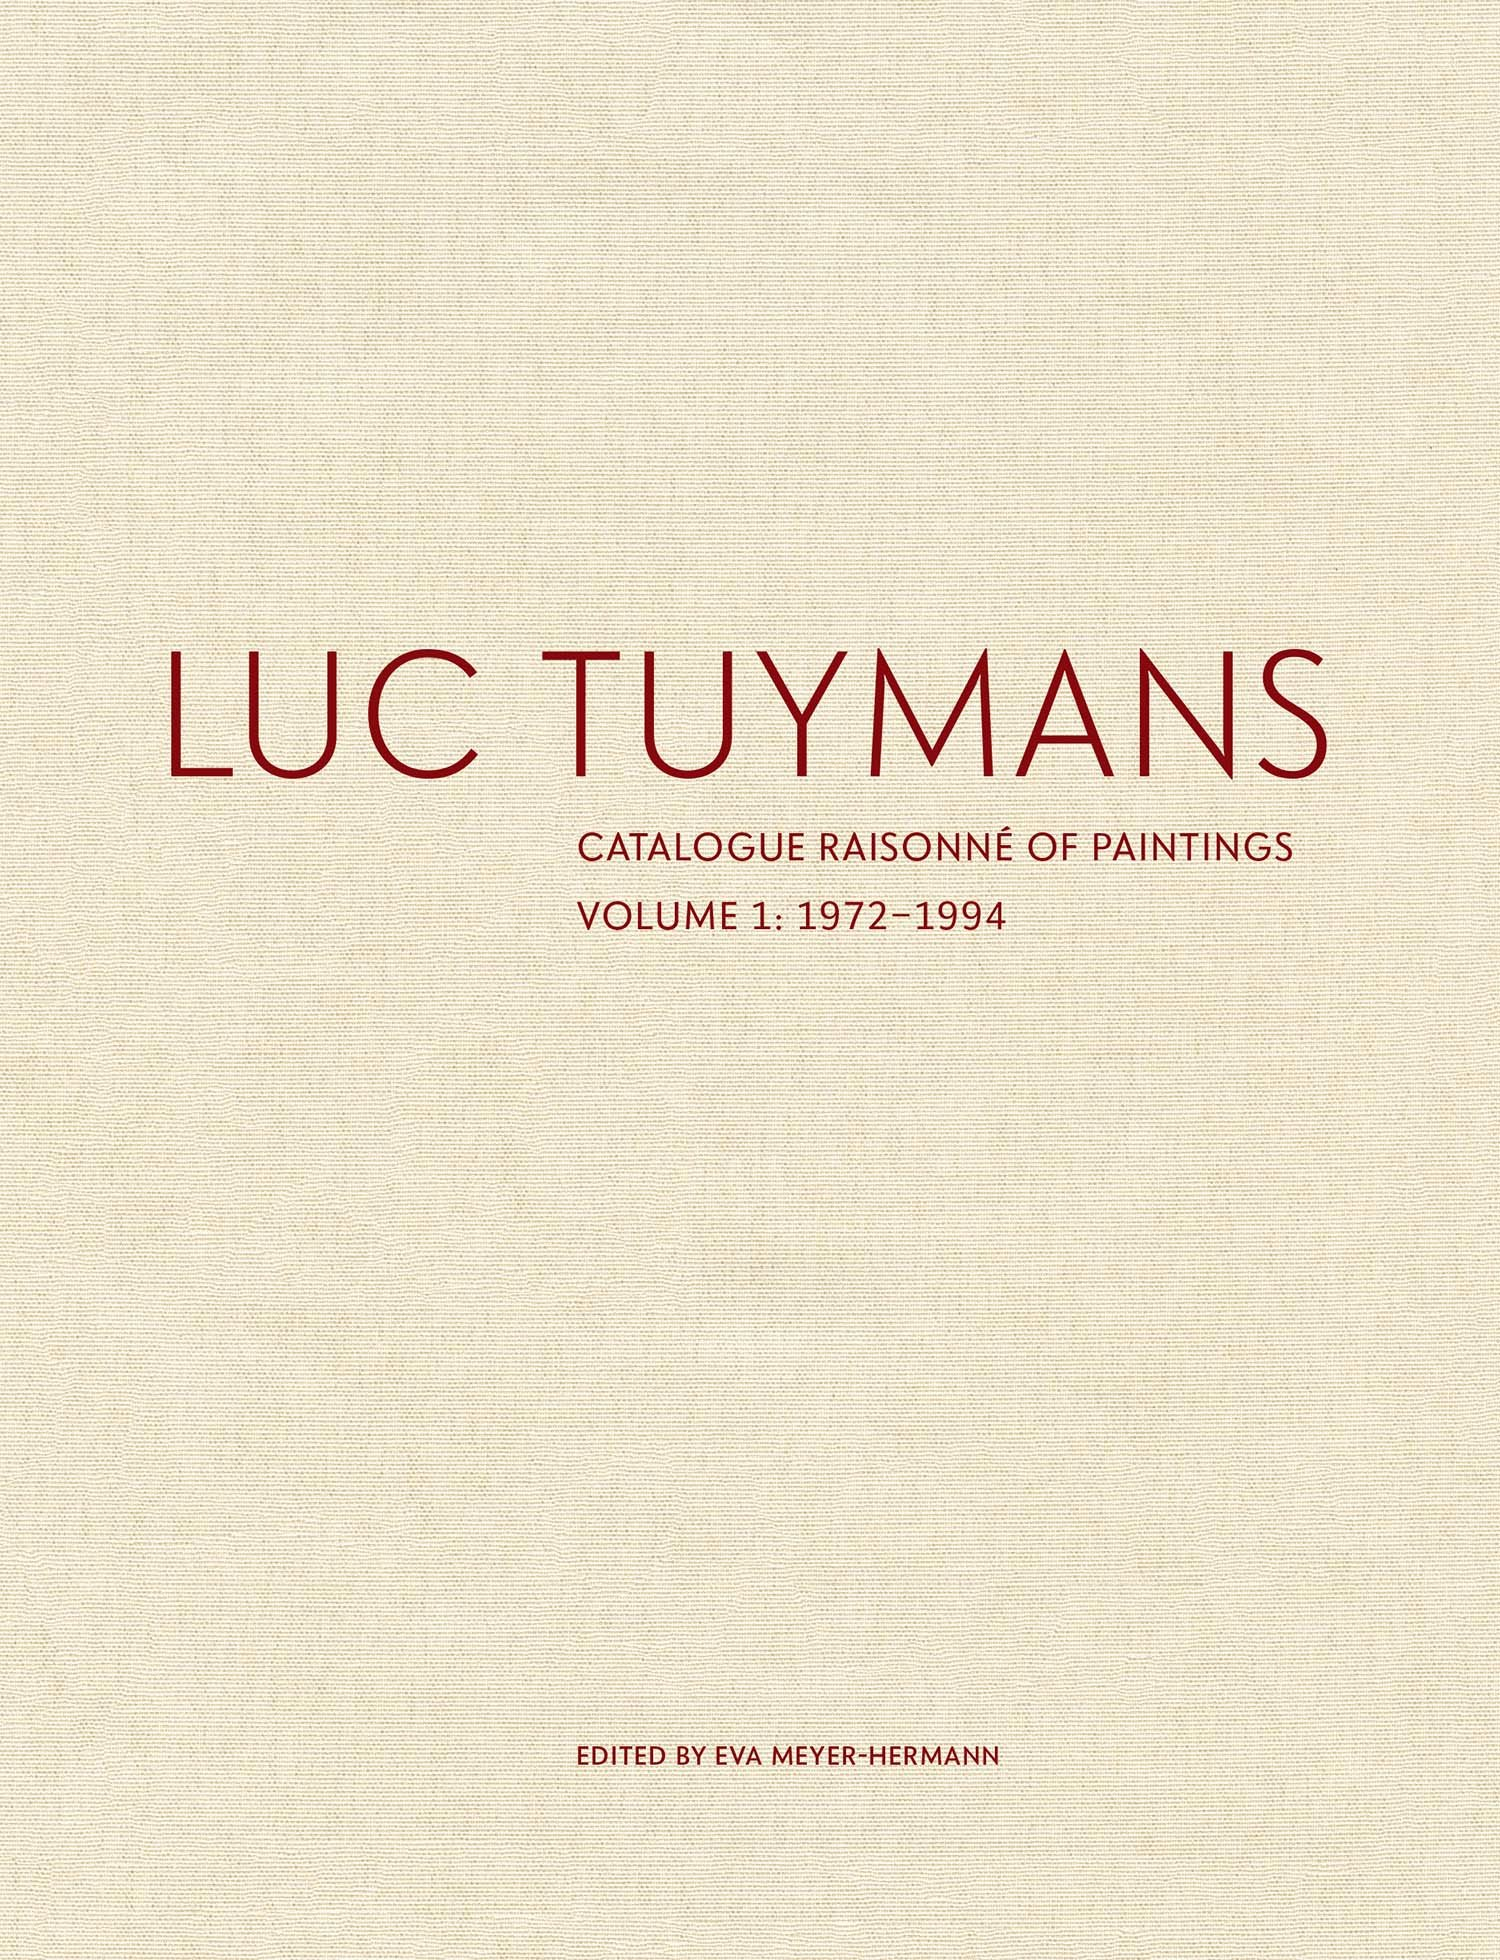 Luc Tuymans: Catalogue Raisonné of Paintings, Volume 1: 1972-1994